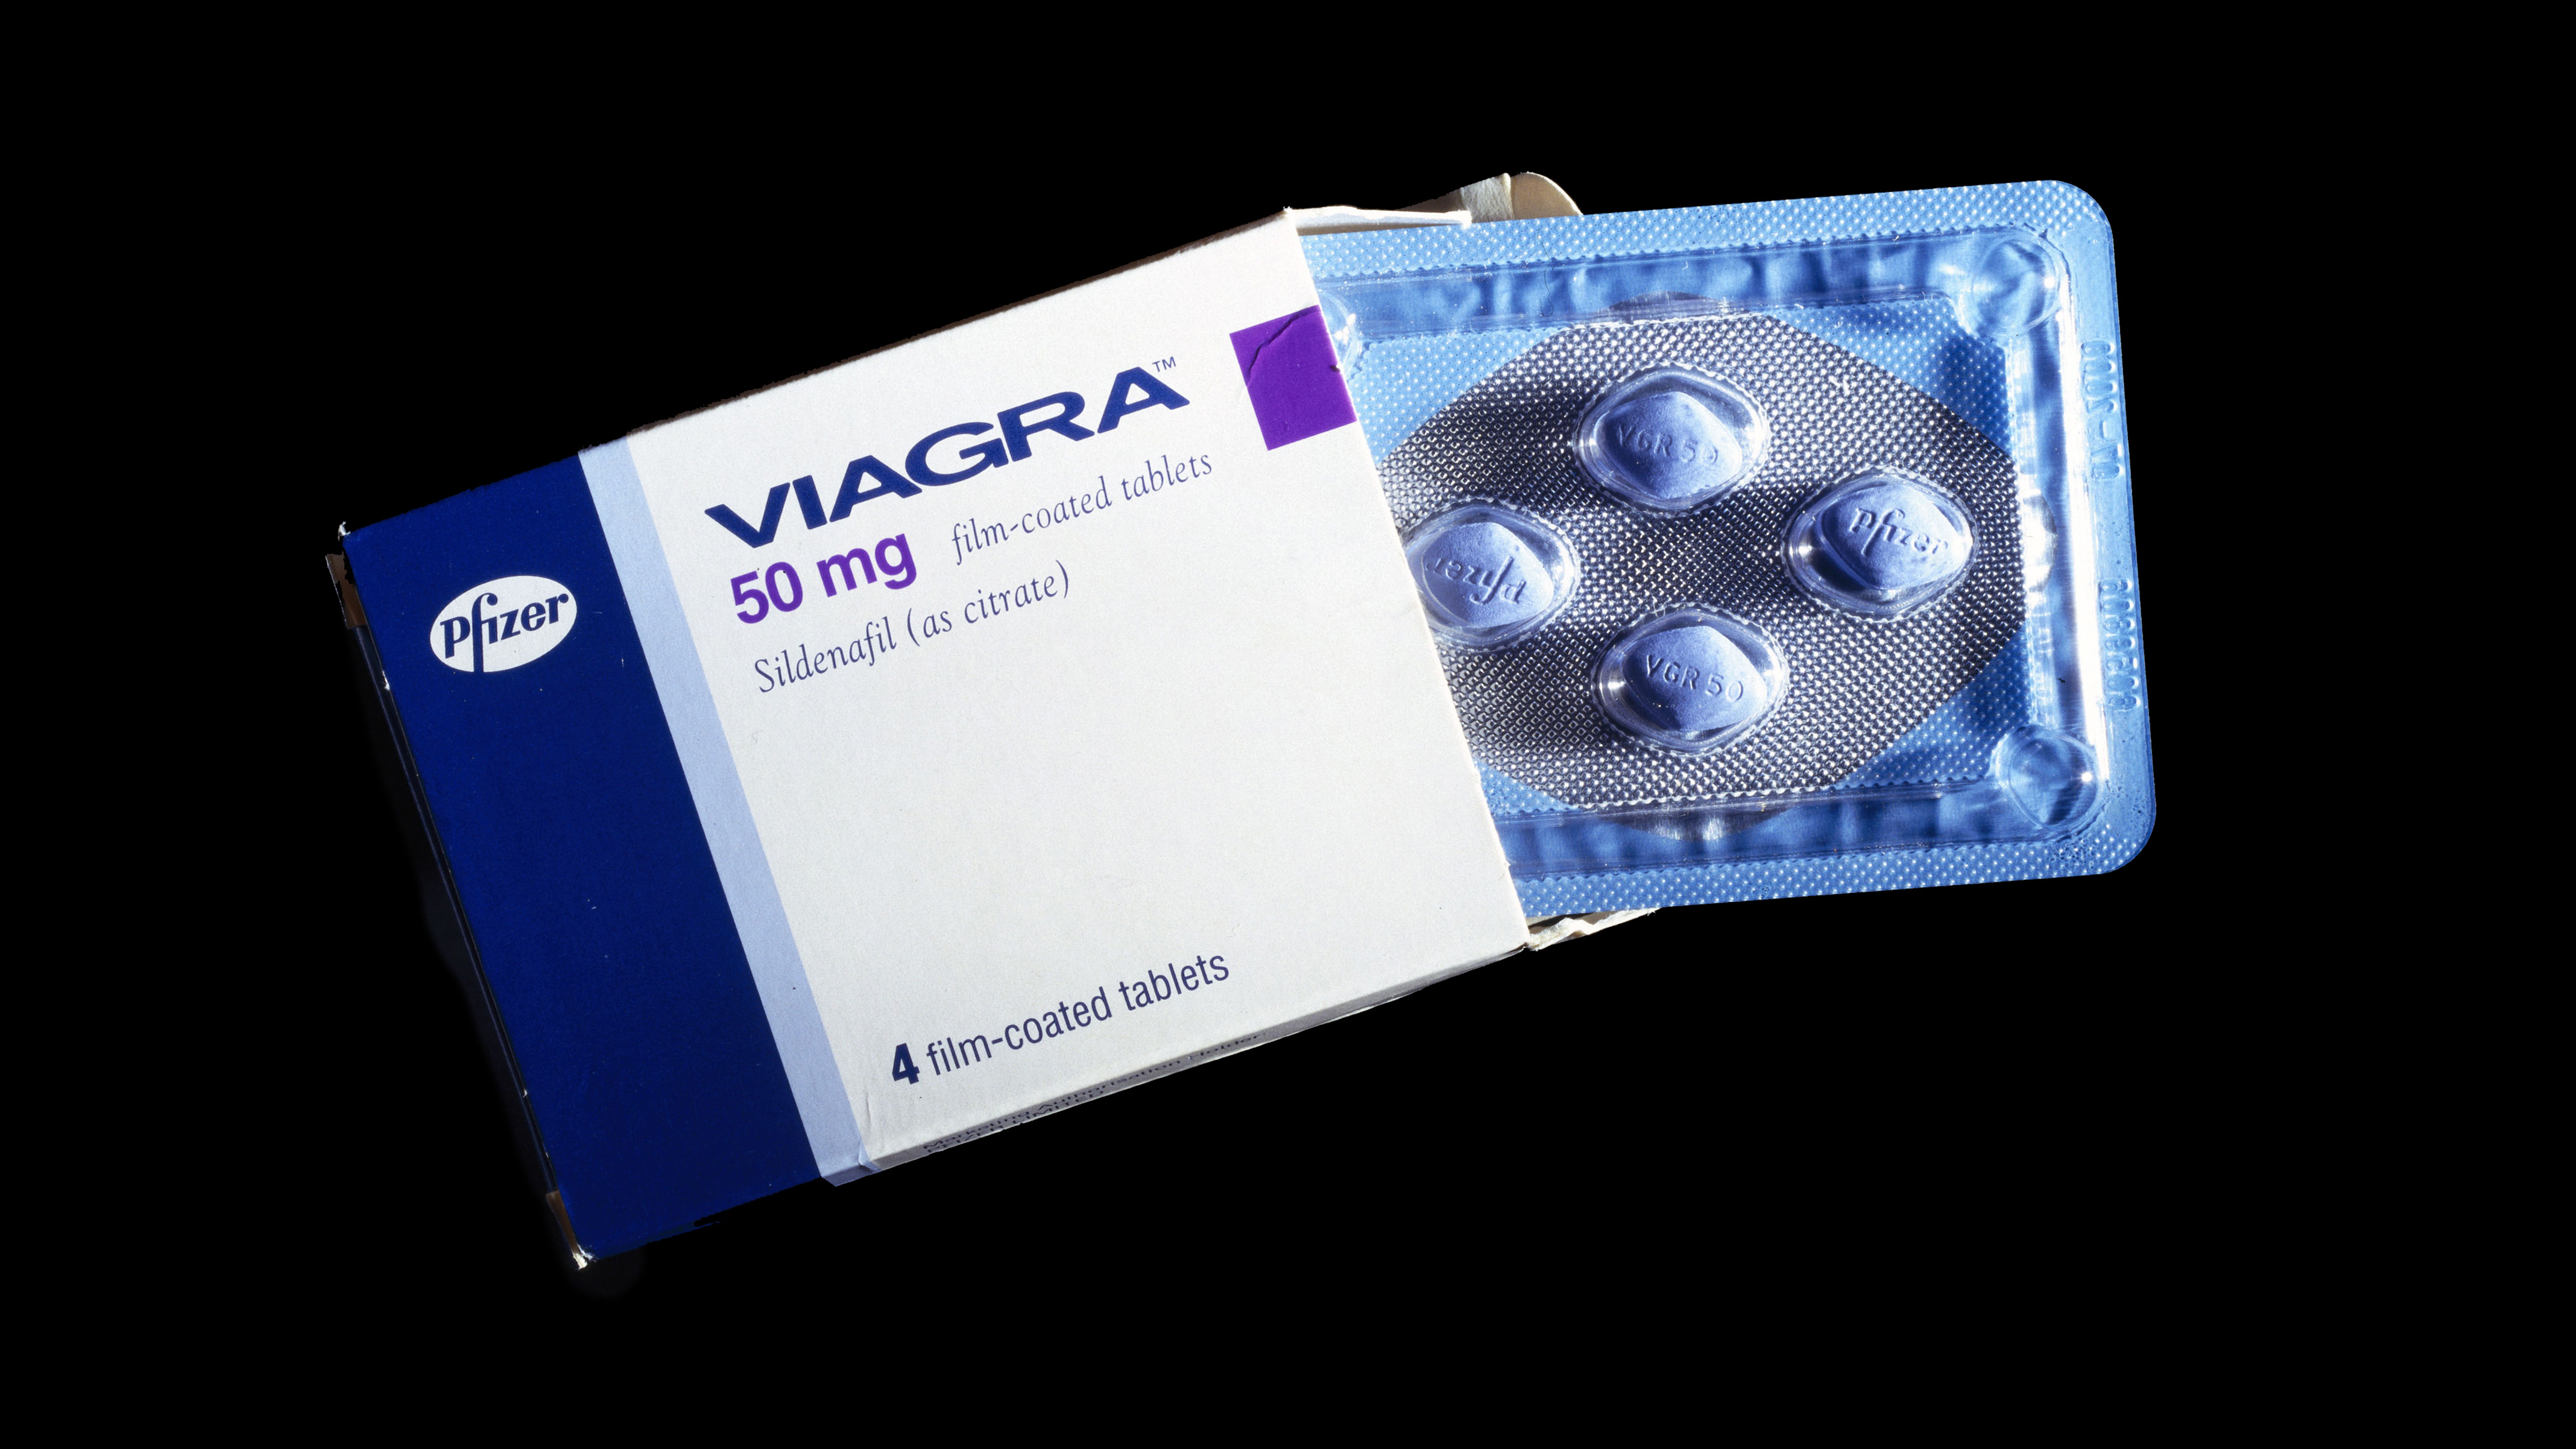 The Viagra Effect: Has It Really Given Sex a Lift?